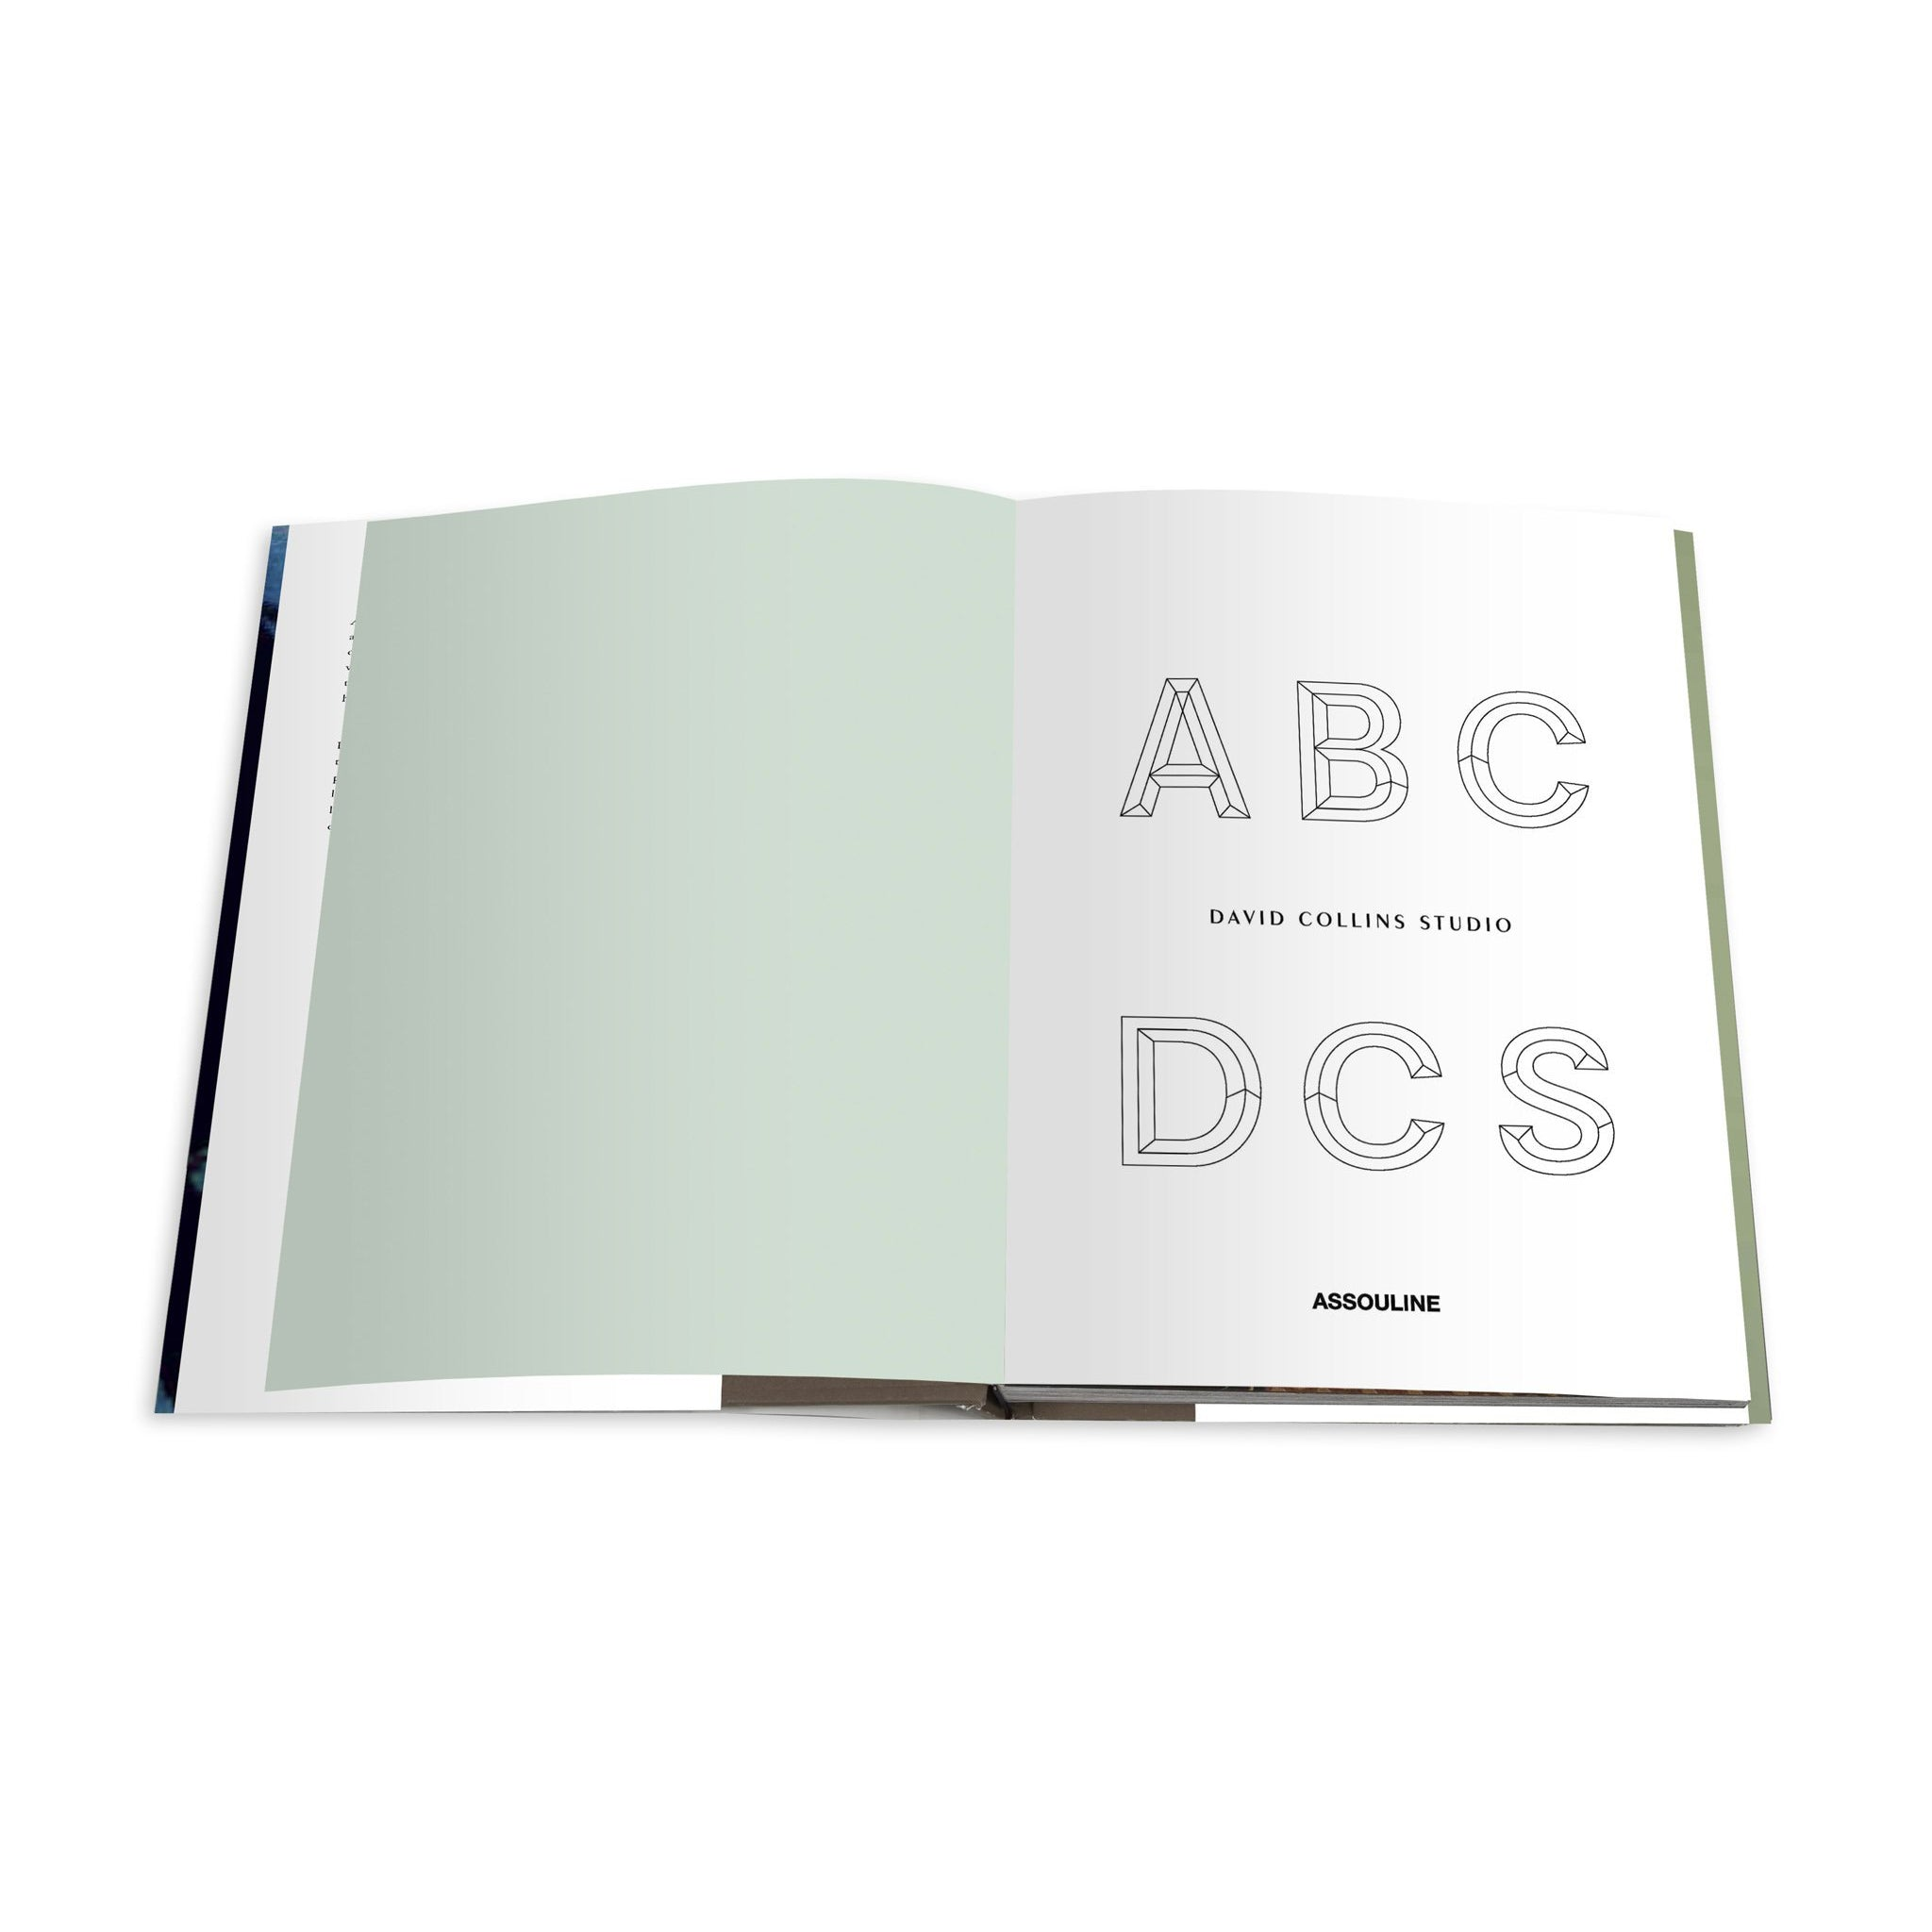 David Collins Studio: ABCDCS